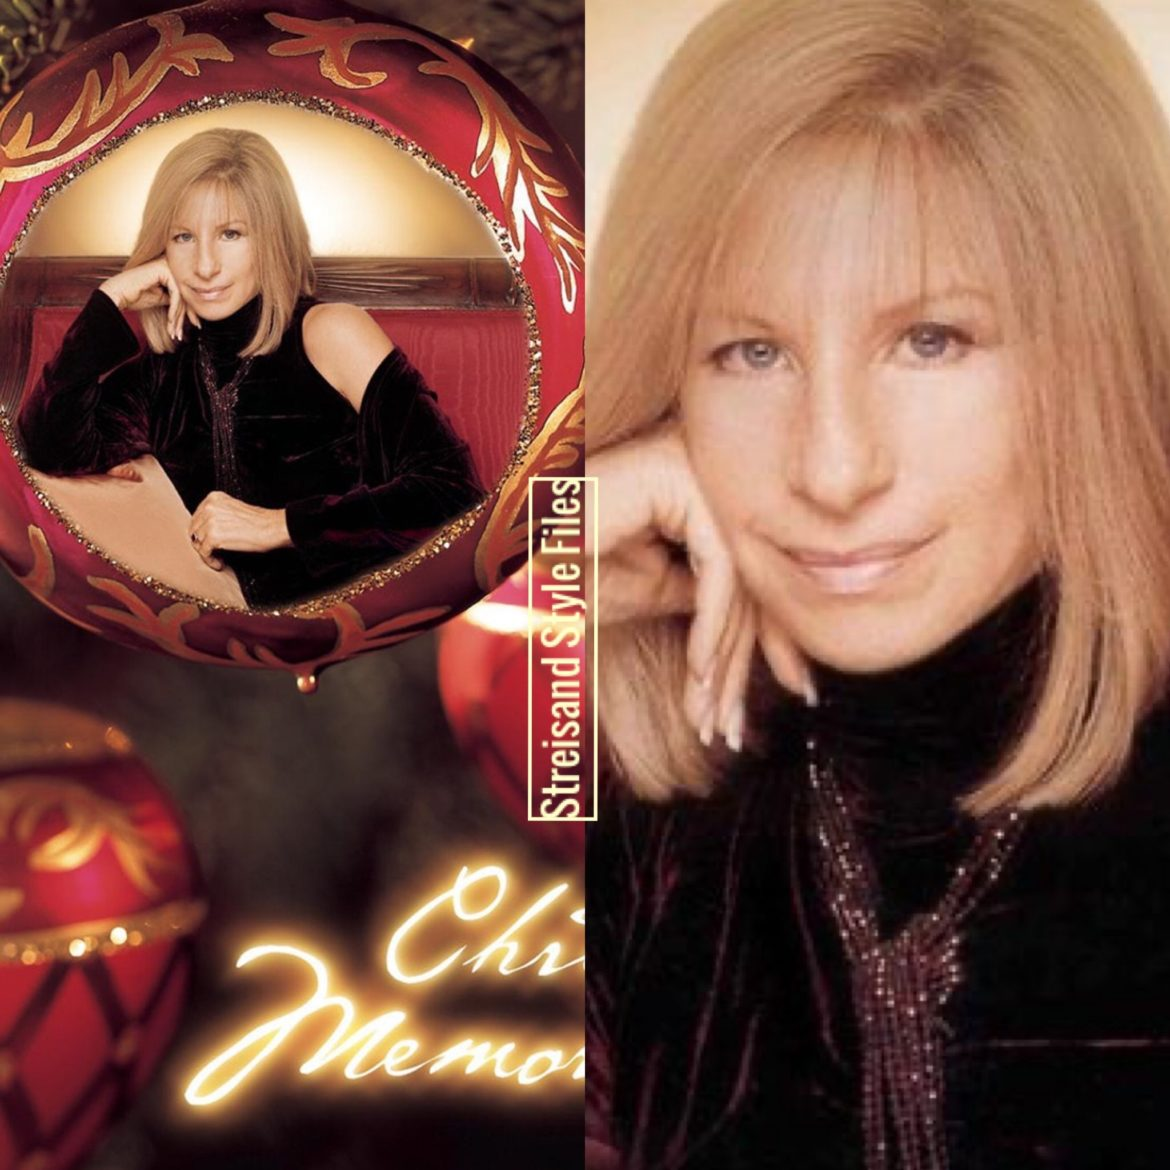 Christmas Memories Album Cover In Velvet DKNY